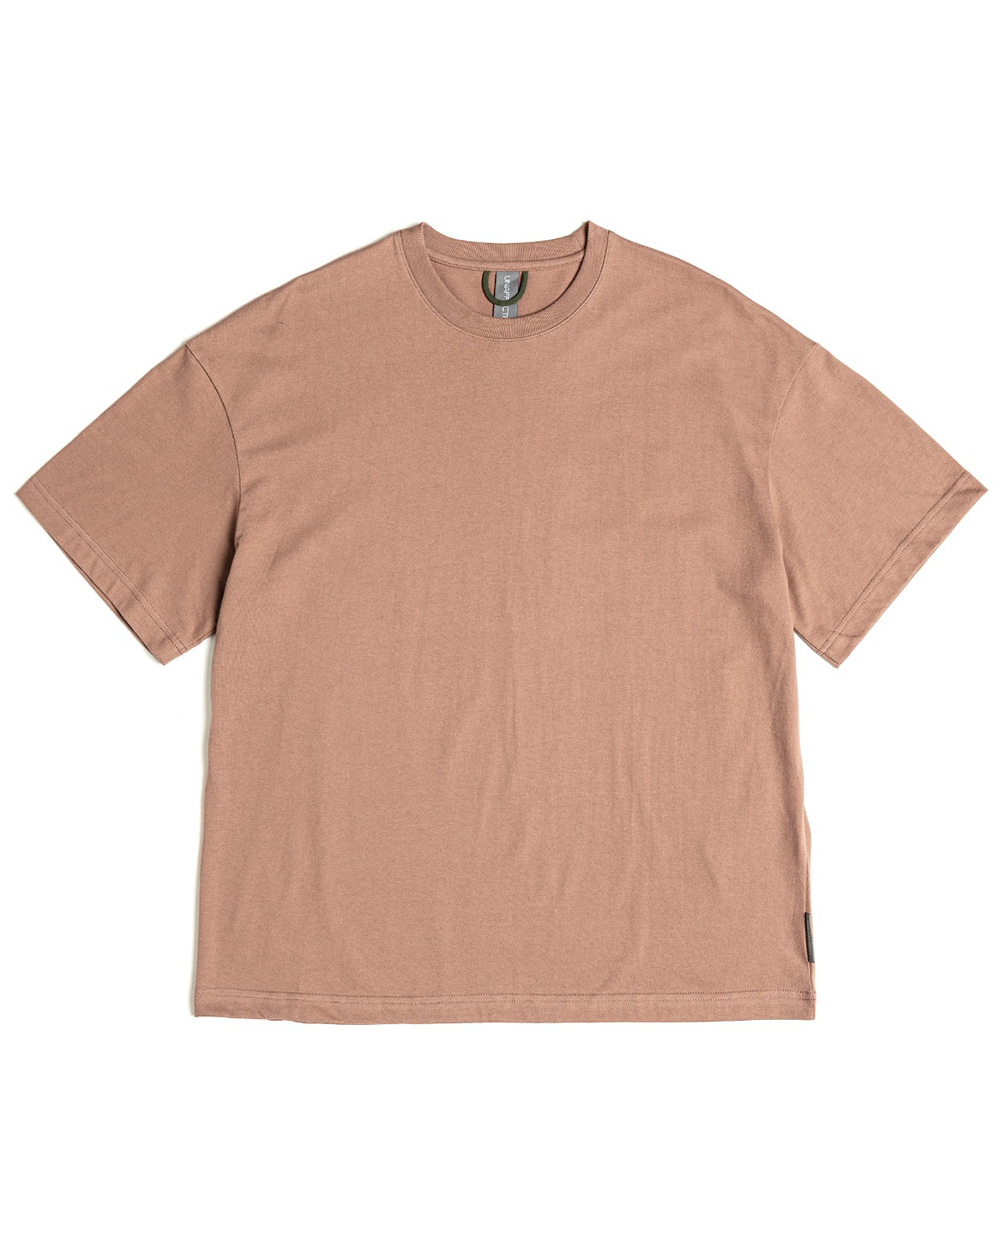 언어펙티드 LOGO LABEL T-SHIRT (Salomon)